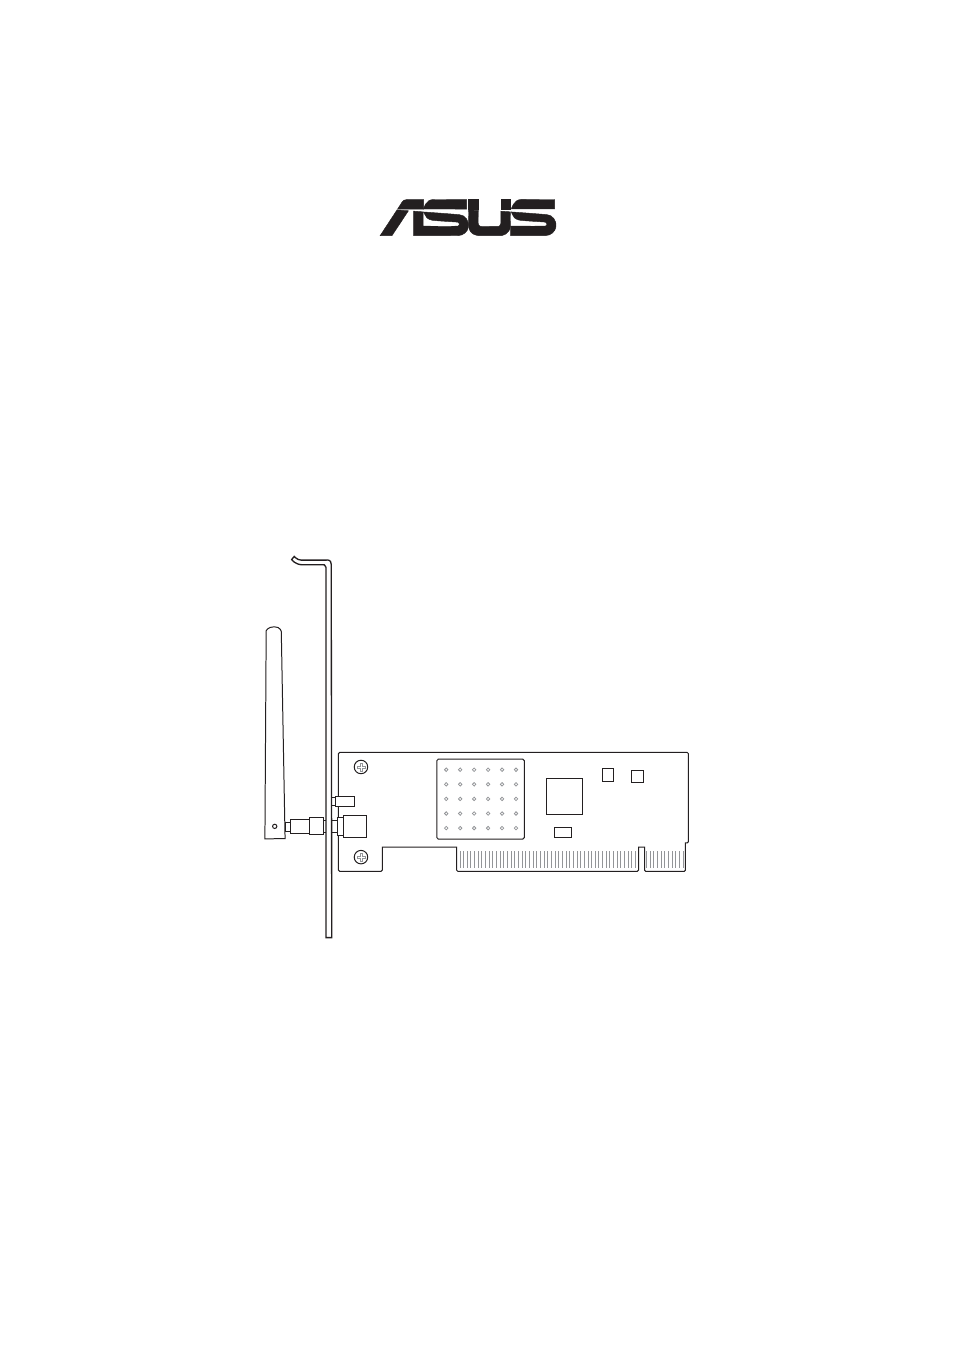 ASUS WIRELESS WL-138G V2 DRIVER (2019)